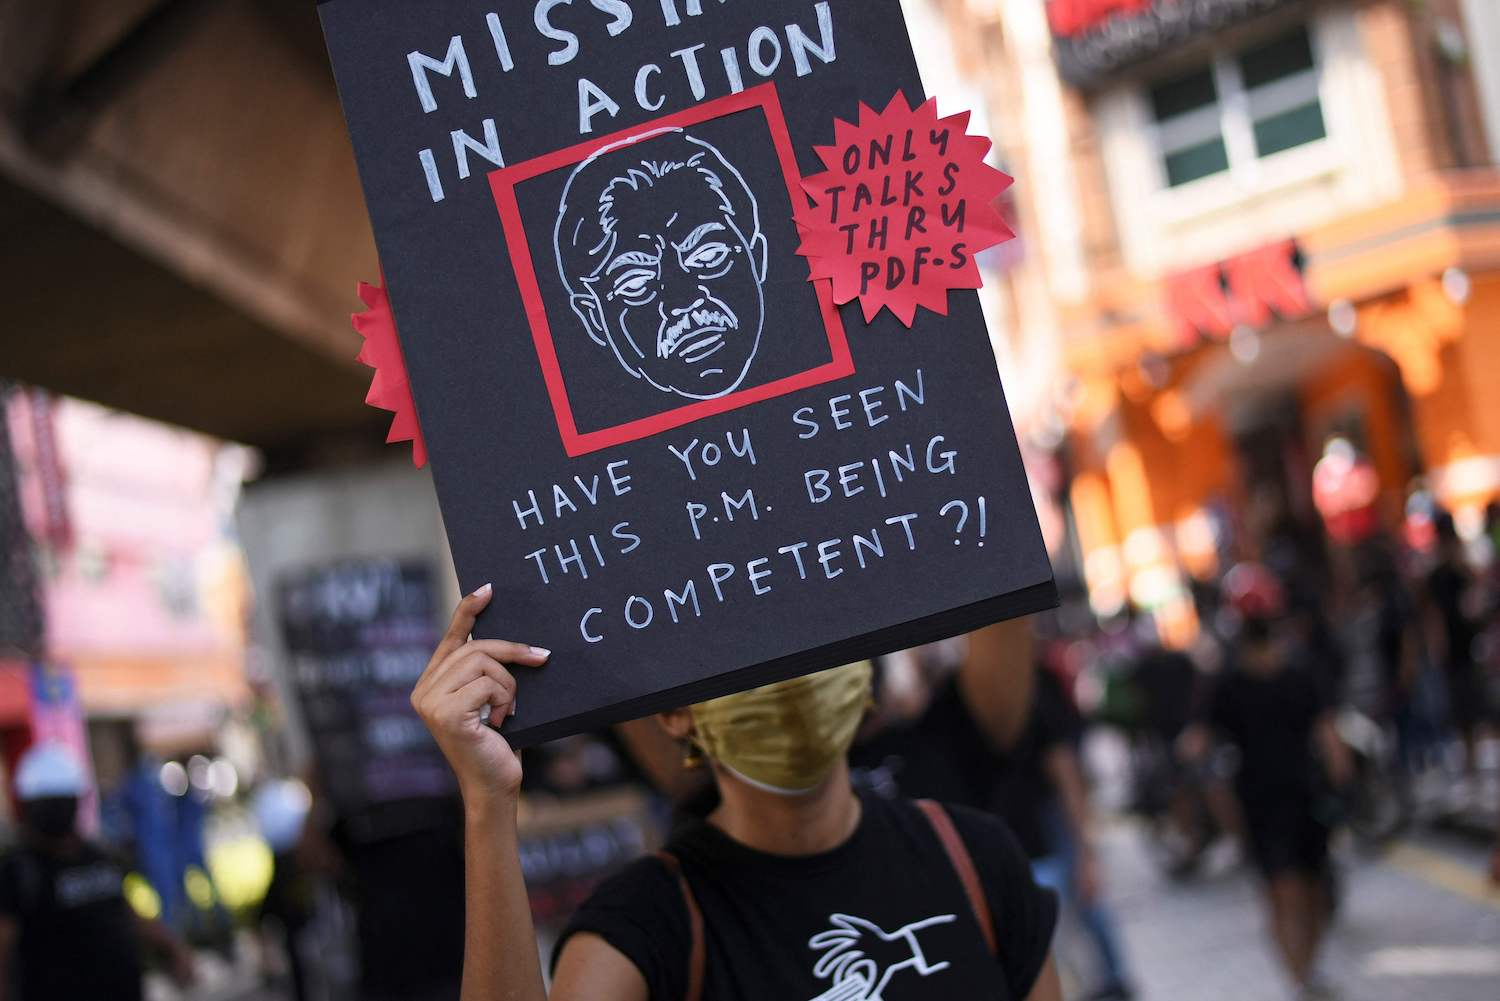 Black-clad Malaysians stage rare protest